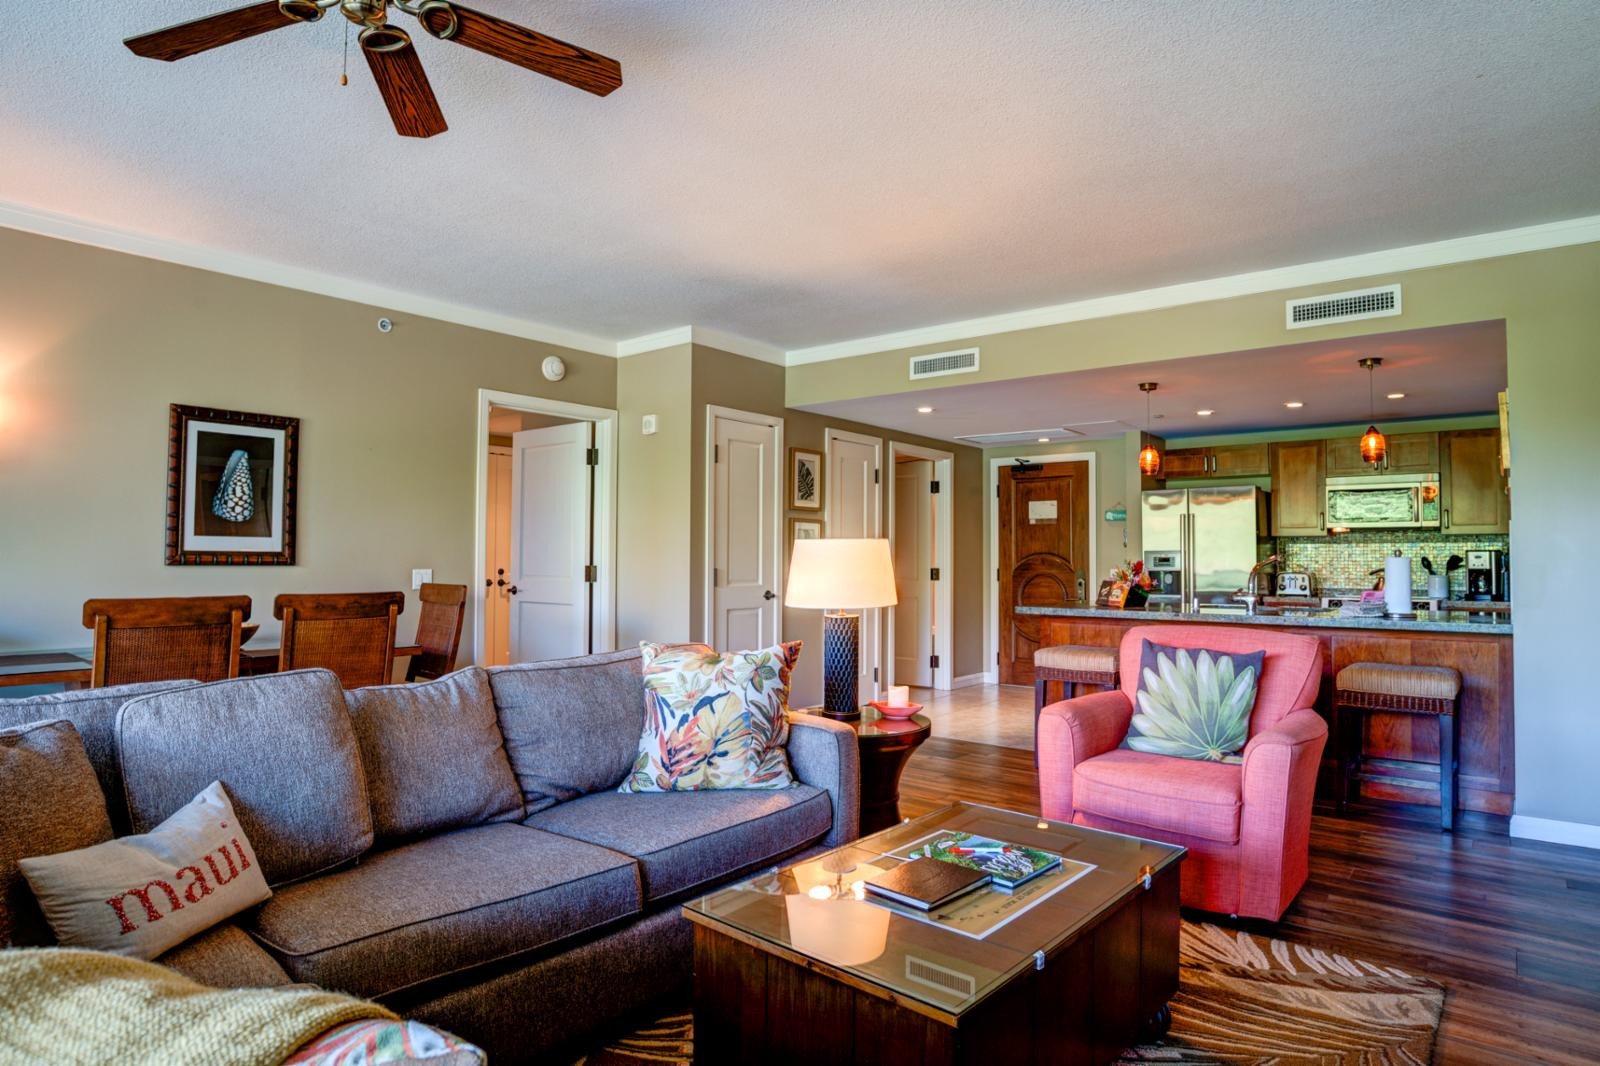 LARGE open concept with ceiling fans through out